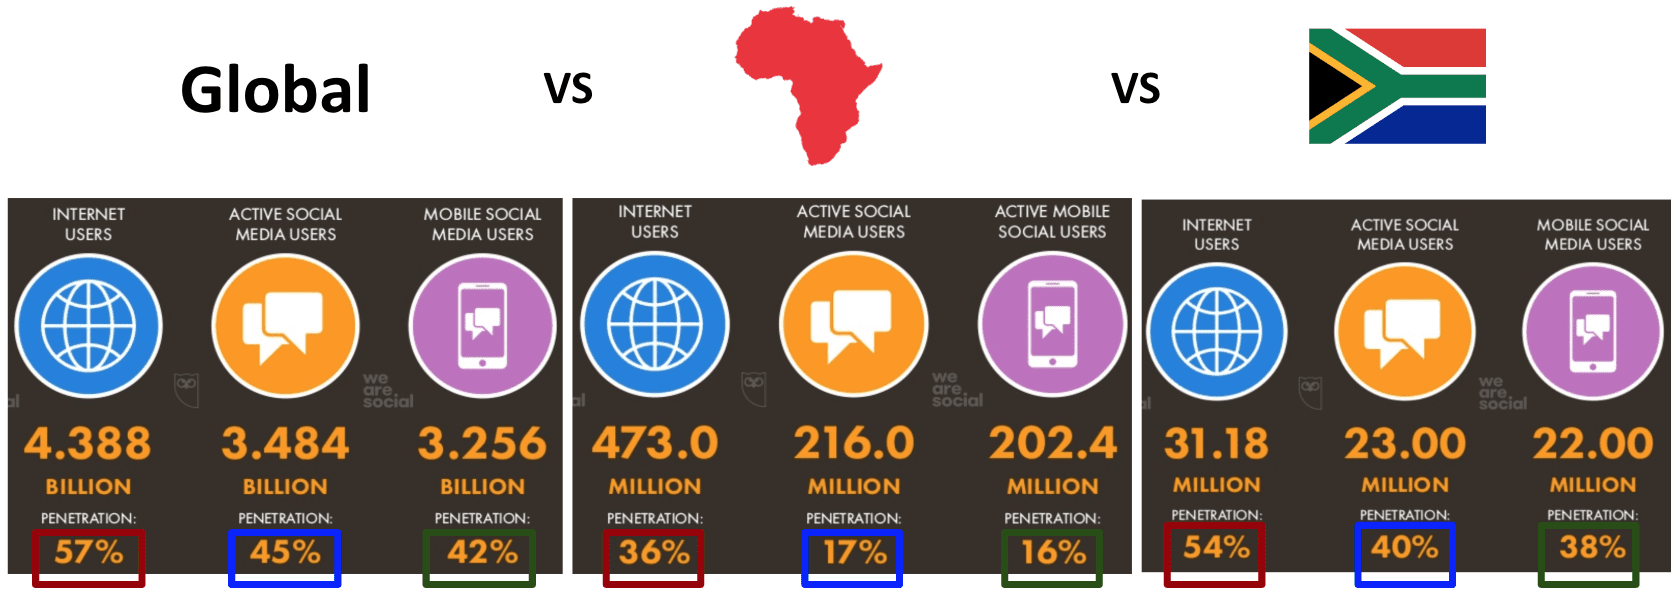 Bra Willy Seyama | eNitiate | Global Digital 2019 Report | South Africa | Internet | Social Media | Penetration | 29 September